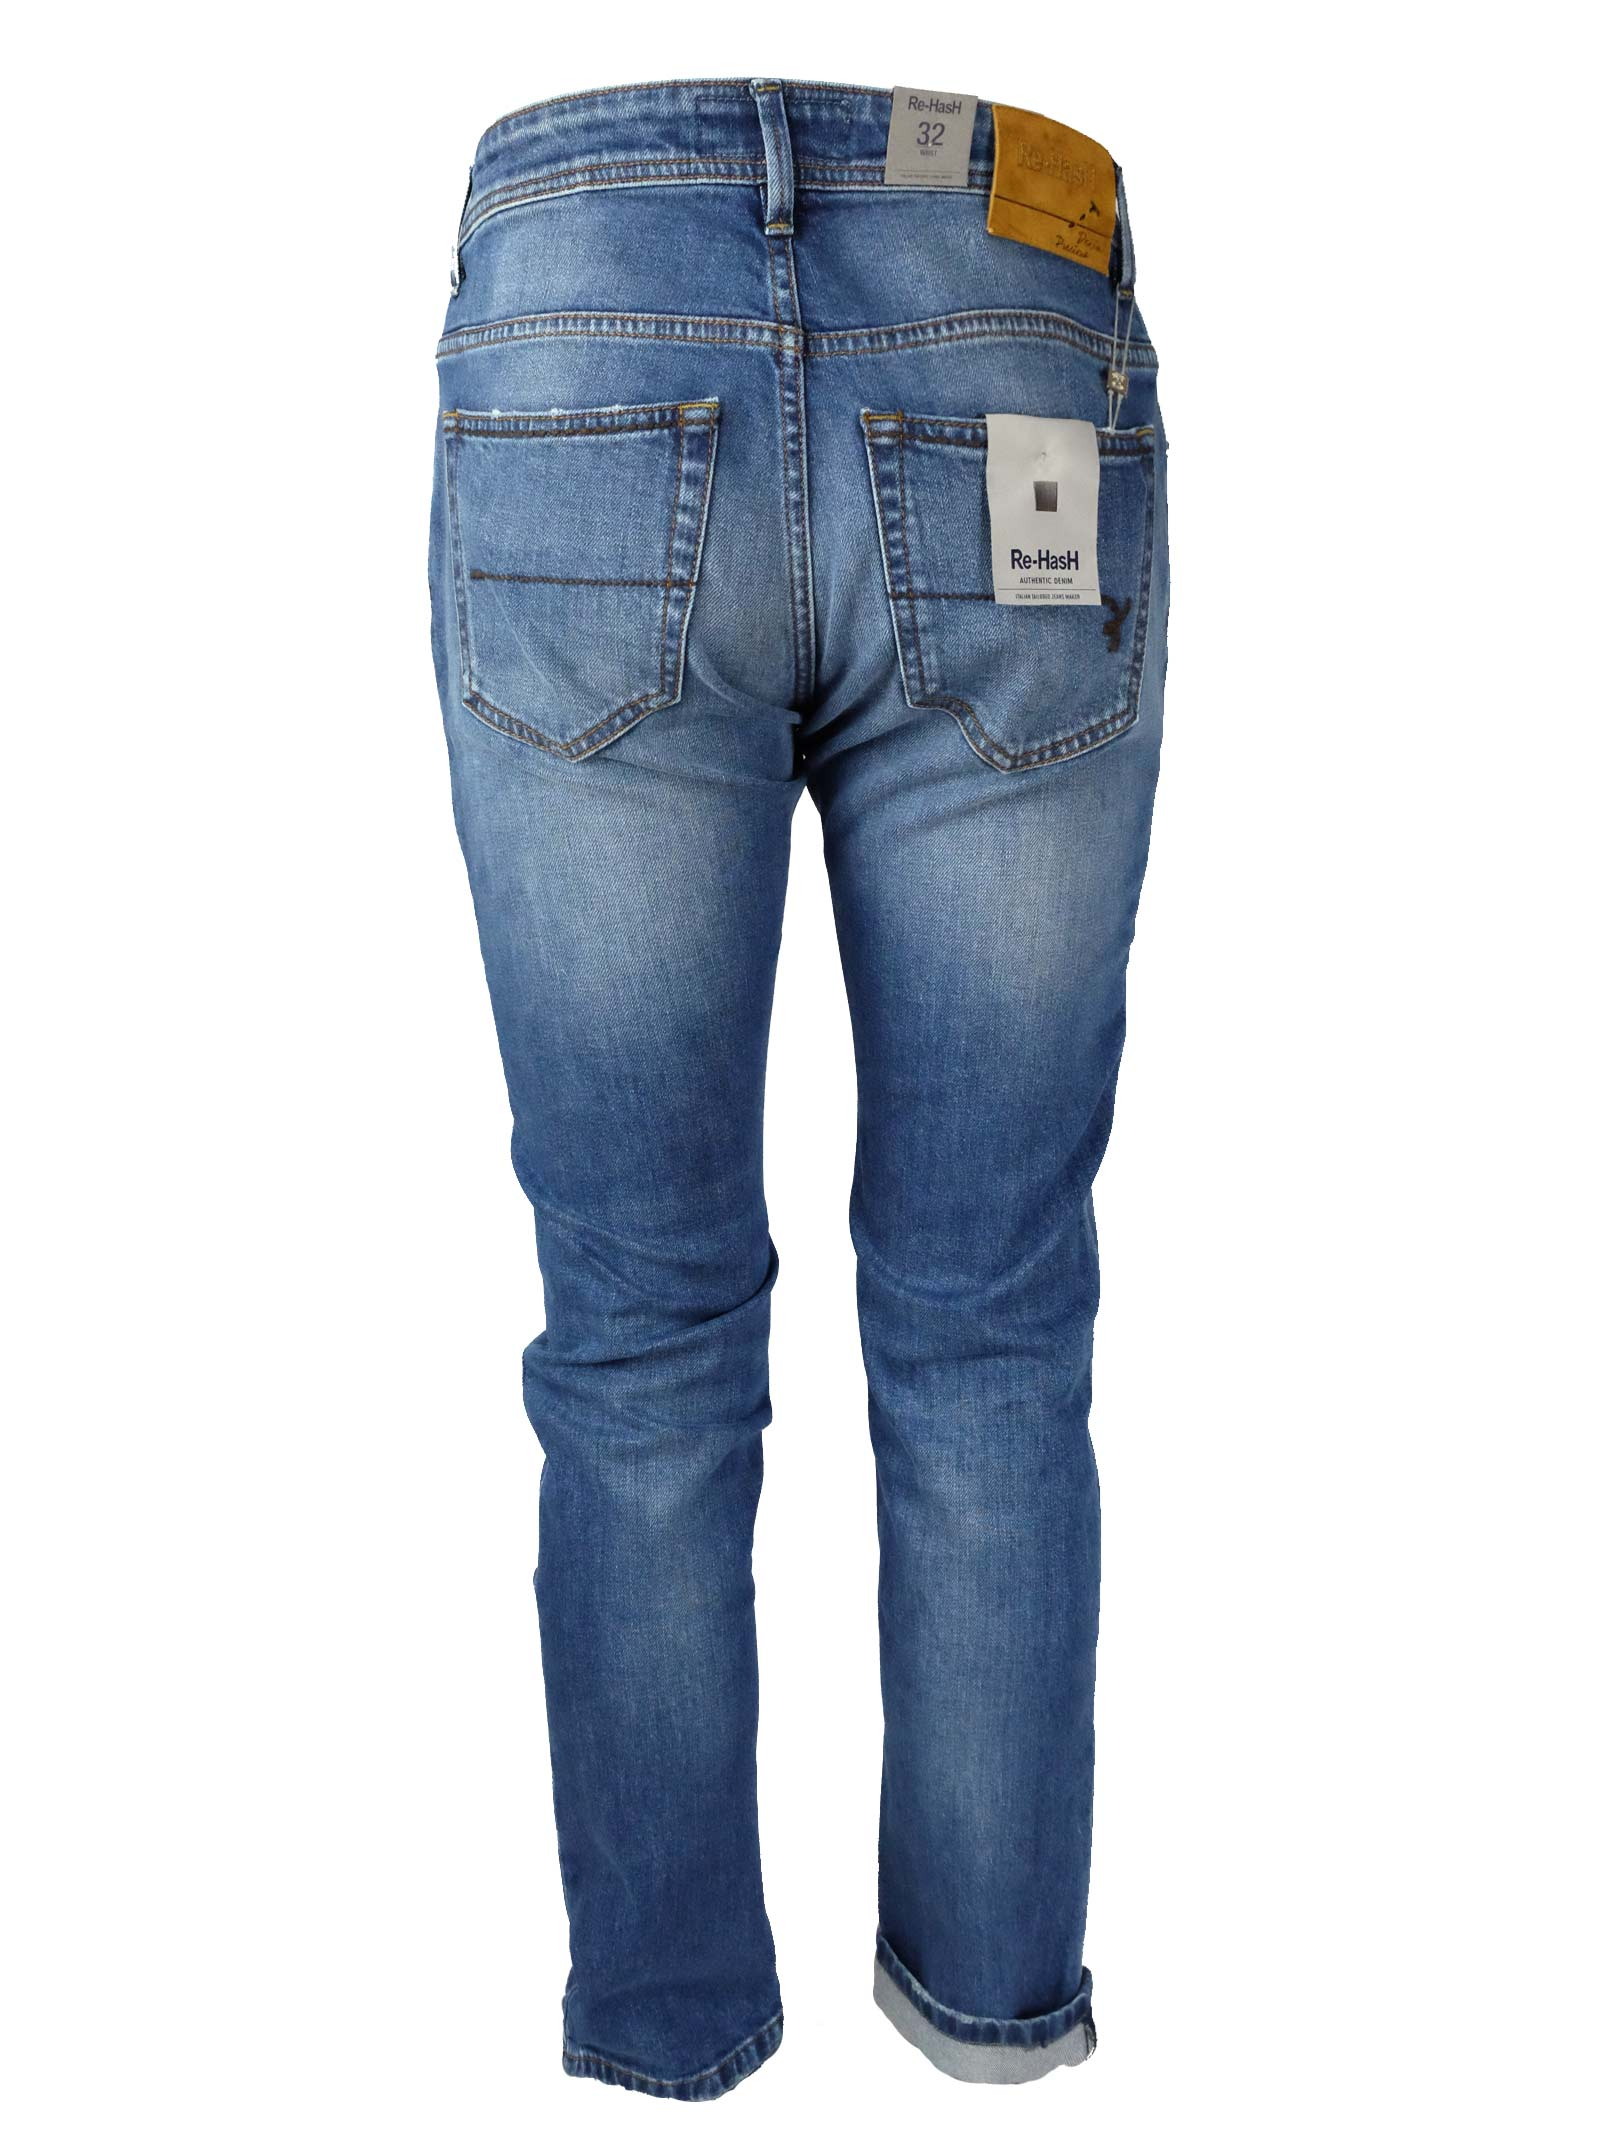 JEANS 11 OZ. Re-HasH | Pantaloni | HOPPER 2658 Z313924BLUE